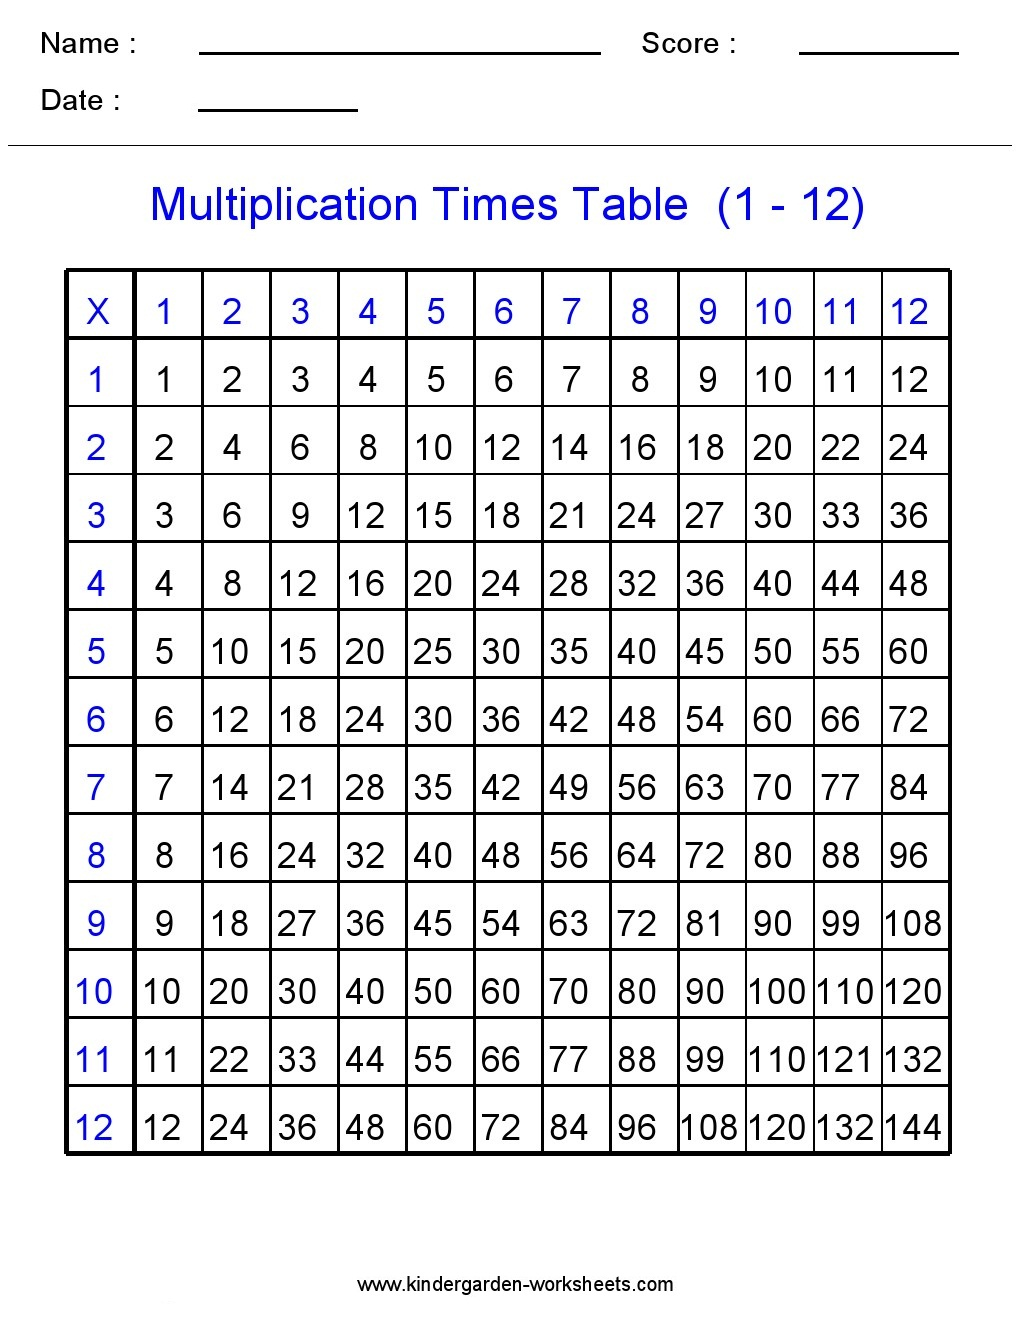 Addition Table Worksheet Grade 1 - multiplication table ...